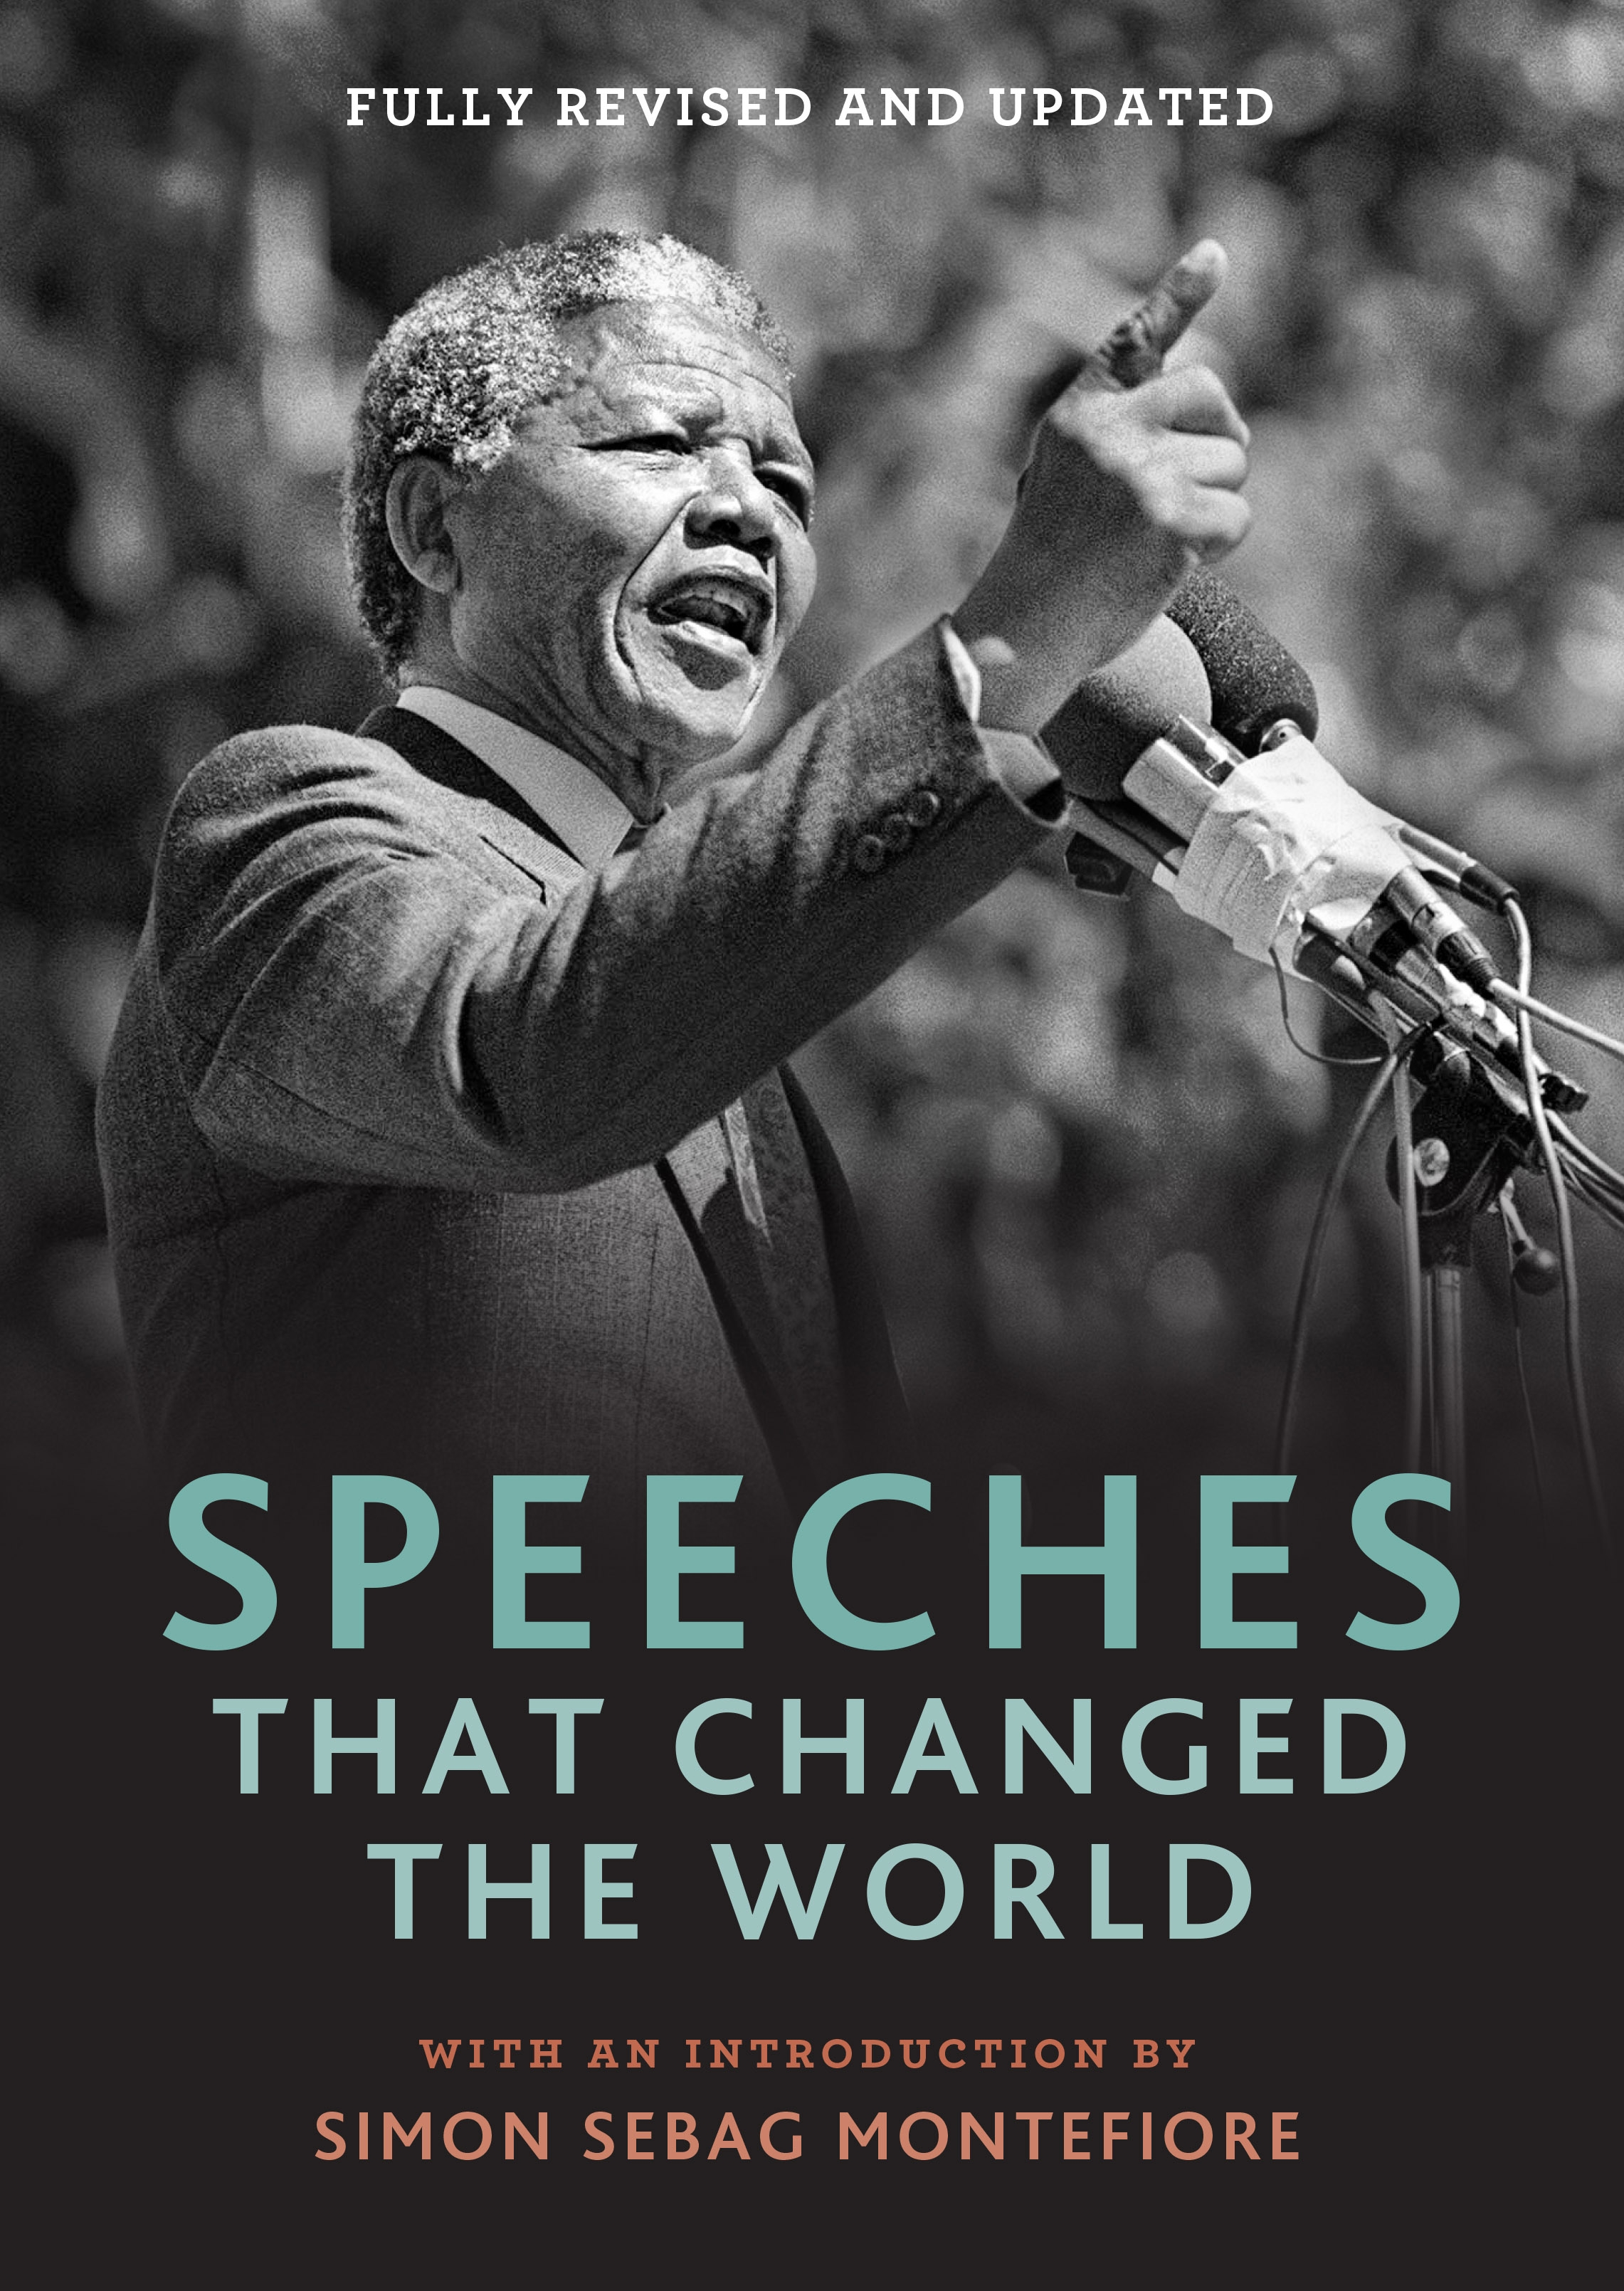 Speeches that Changed the World by Simon Sebag Montefiore, ISBN: 9781848668645